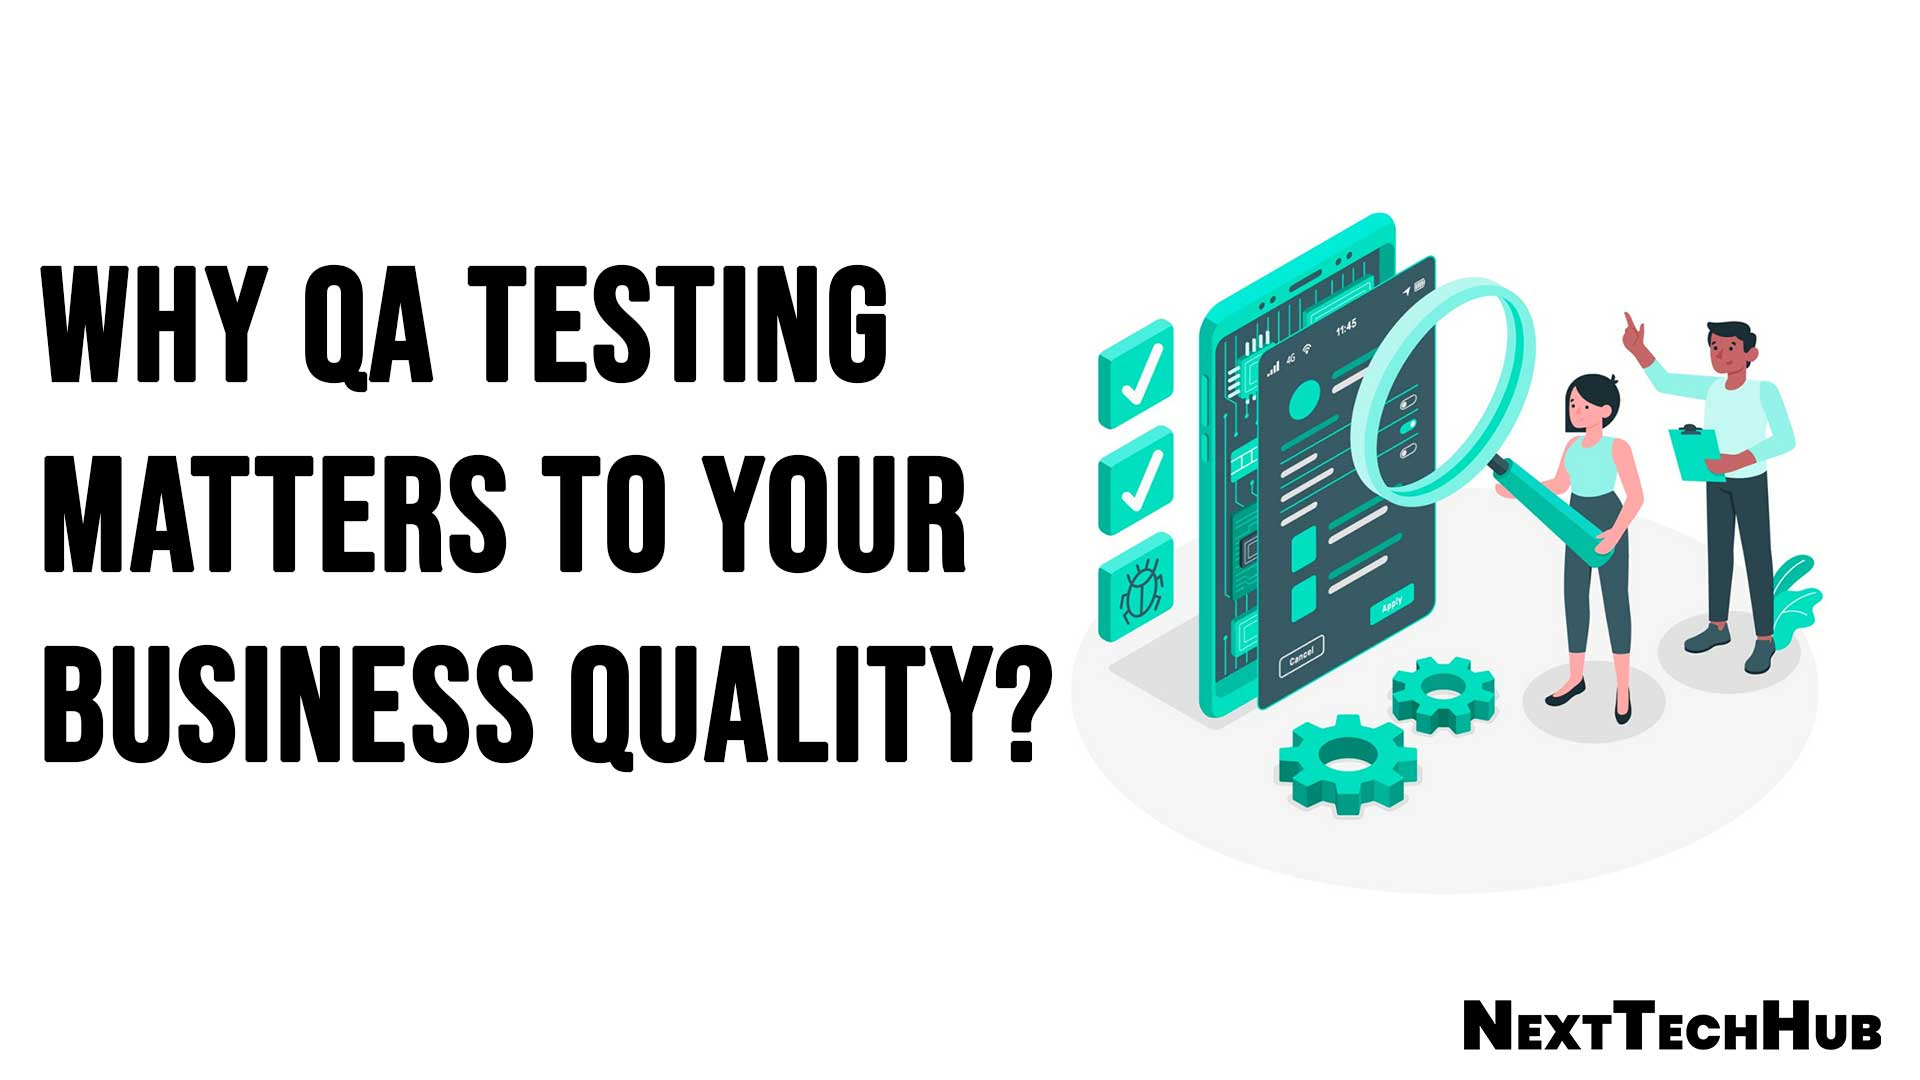 Why QA Testing Matters To Your Business Quality